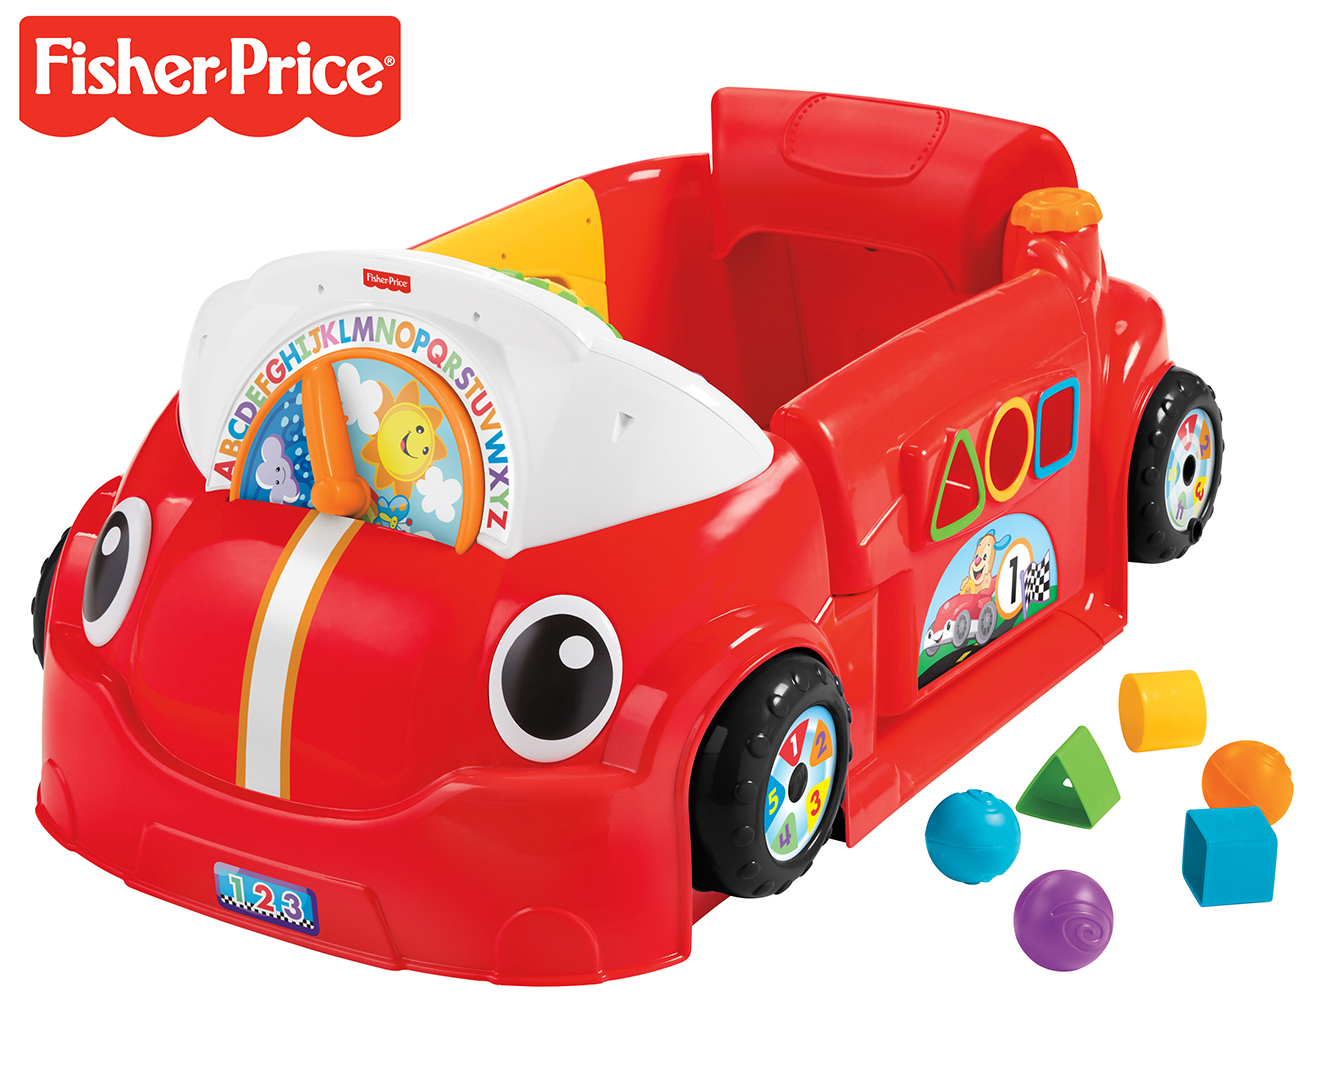 Fisher Price Laugh & Learn Crawl Around Car photo